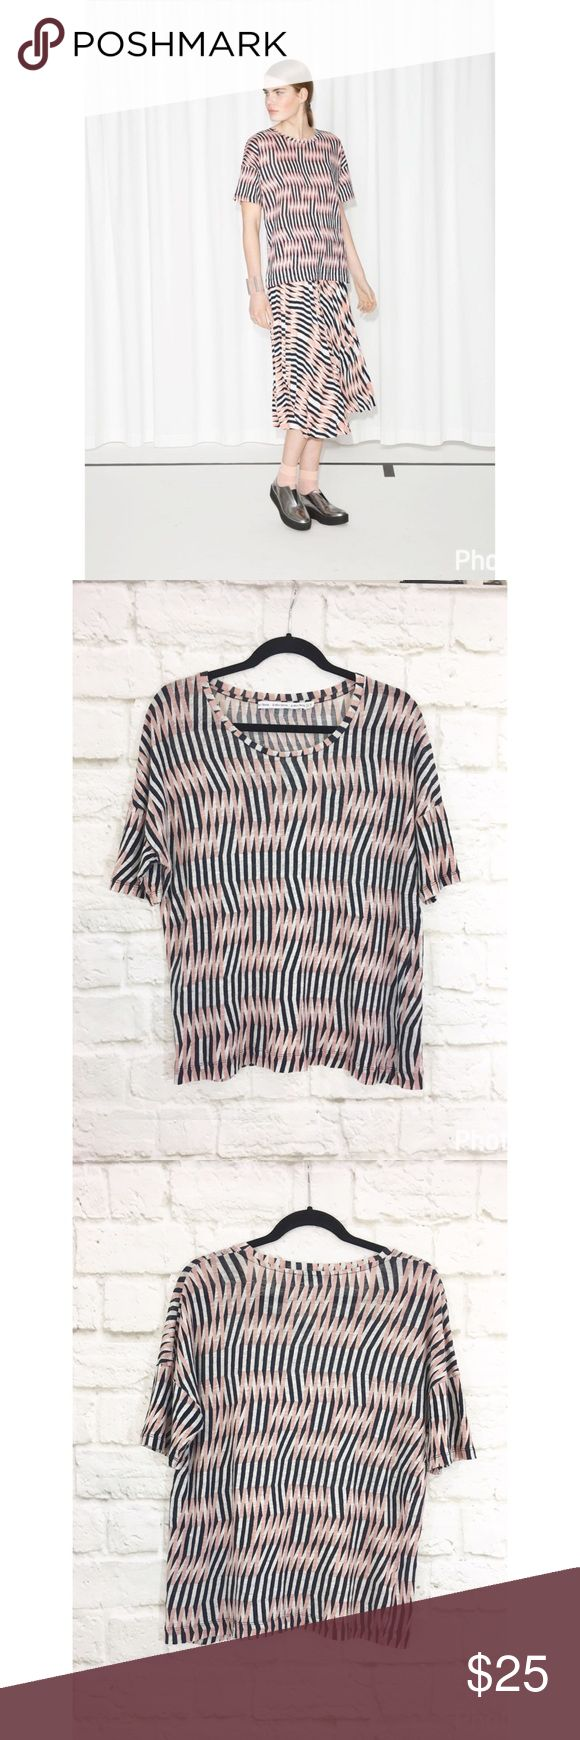 """& other stories graphic wave linen top Great linen graphic navy and pink printed tee. Size 10, excellent condition. Perfect for spring and summer, versatile oversized fit. Laying flat bust 21"""" length 25"""". & other stories Tops Tees - Short Sleeve"""